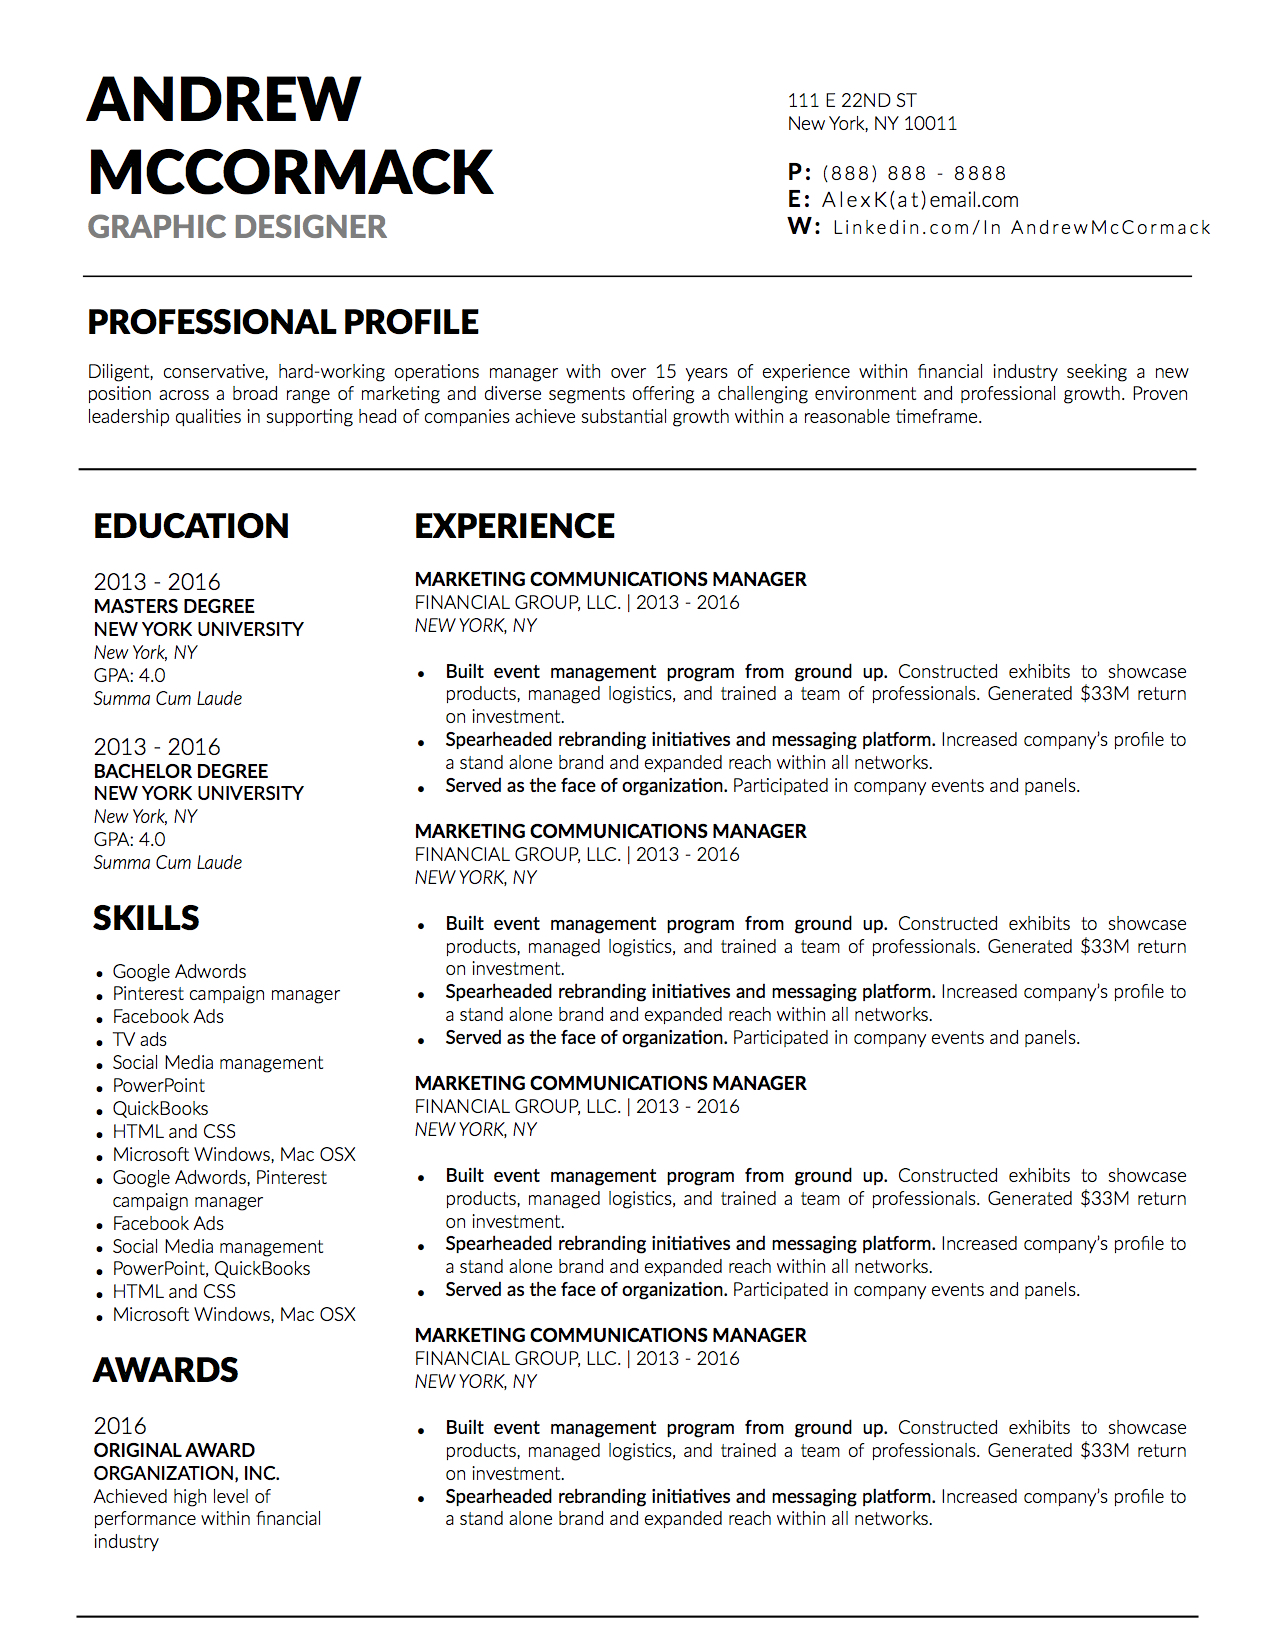 andrew mccormack downloadable resume cover template and cover letter template for microsoft word and apple